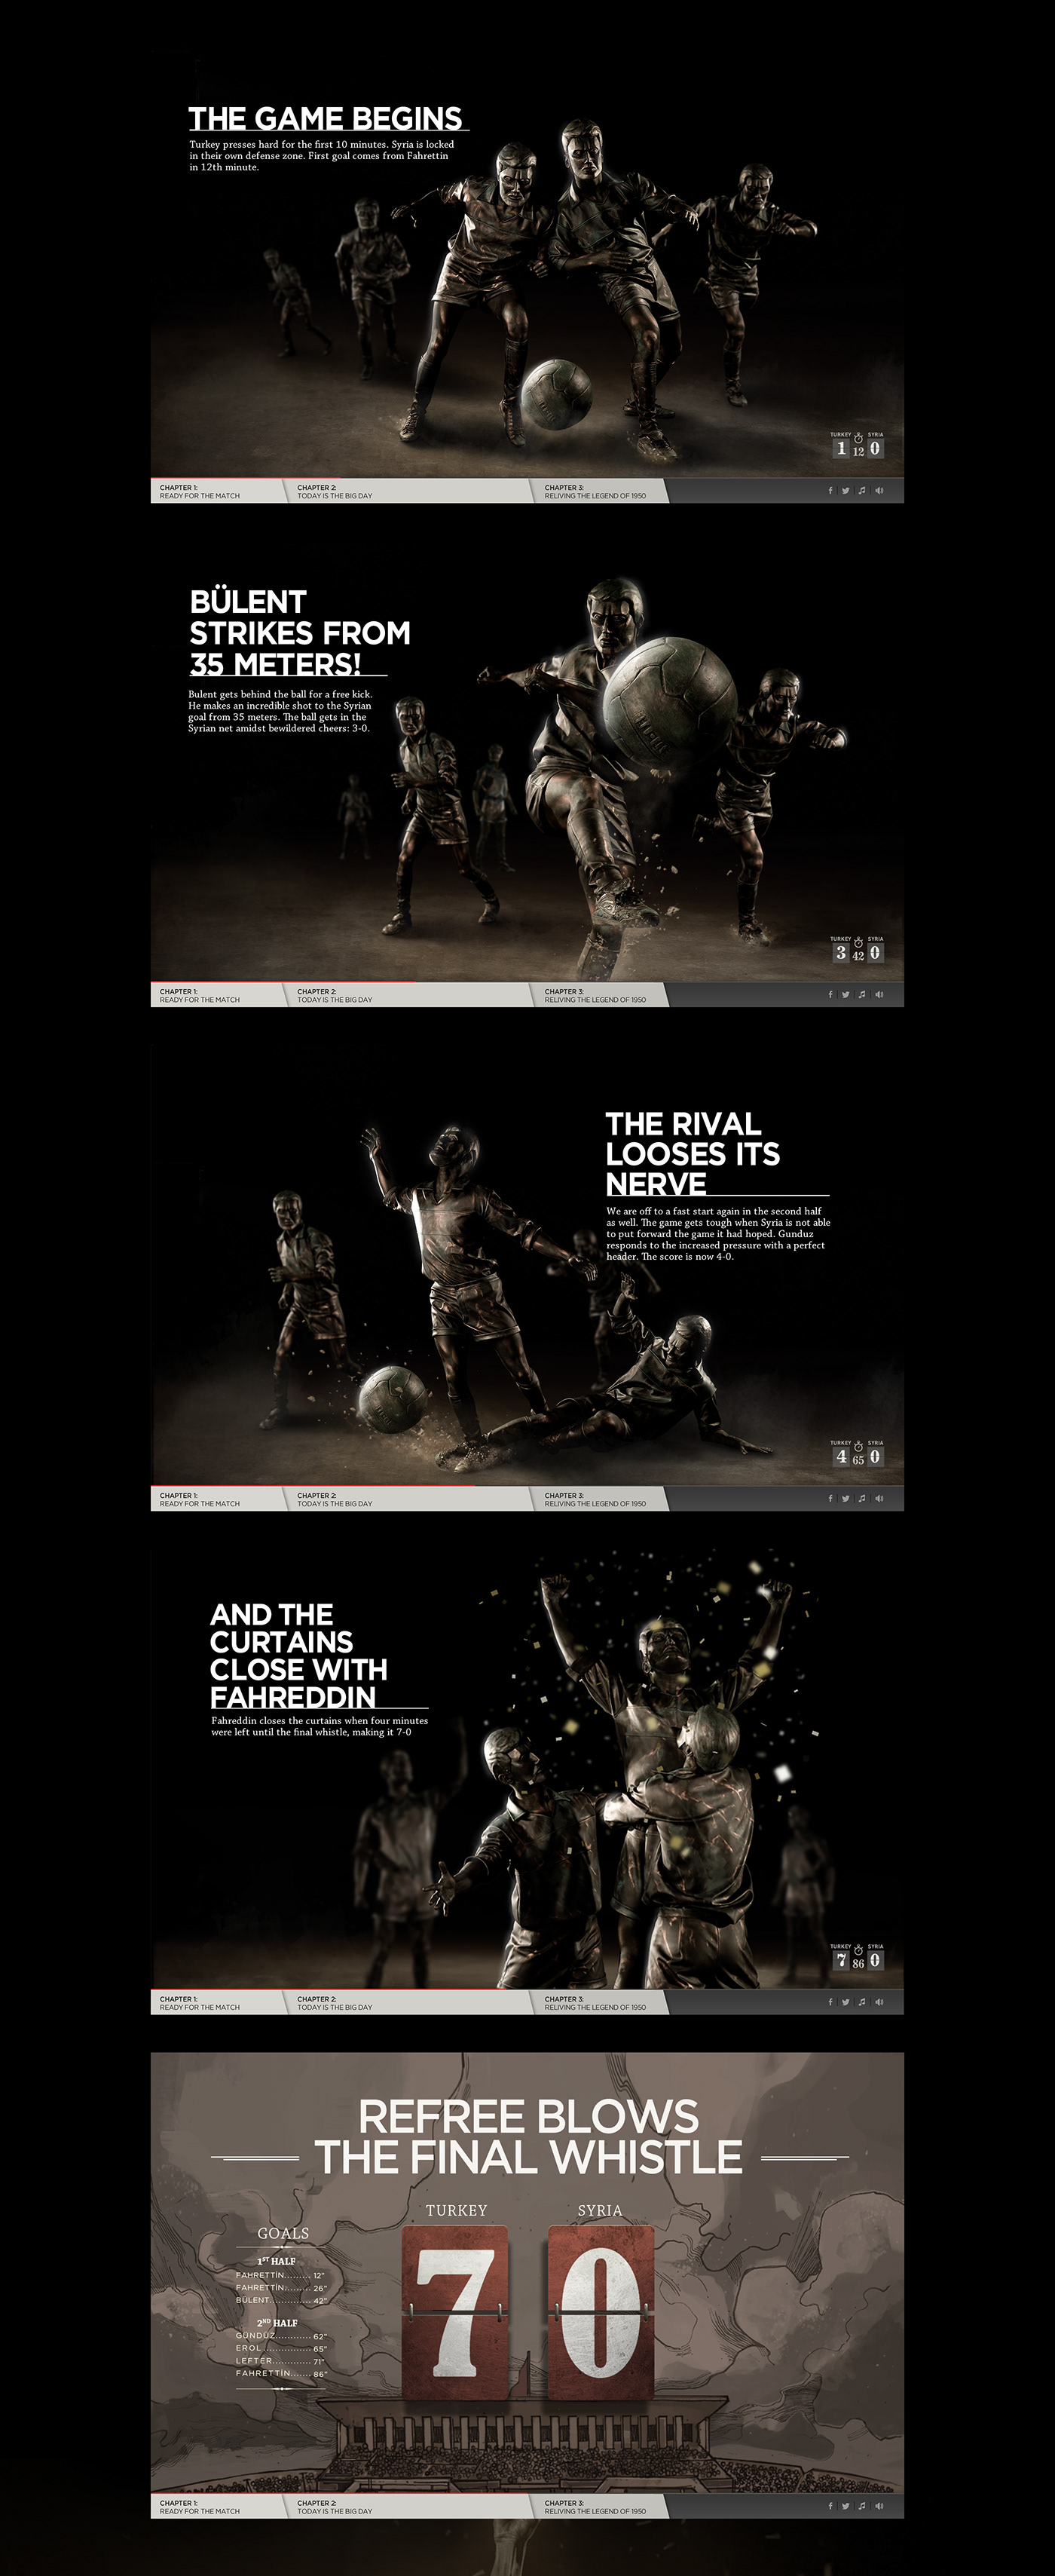 FIFA world cup soccer football Turkey Brazil Akbank Promotion campaign body painting Human sculpture sculpture html5 parallax vintage